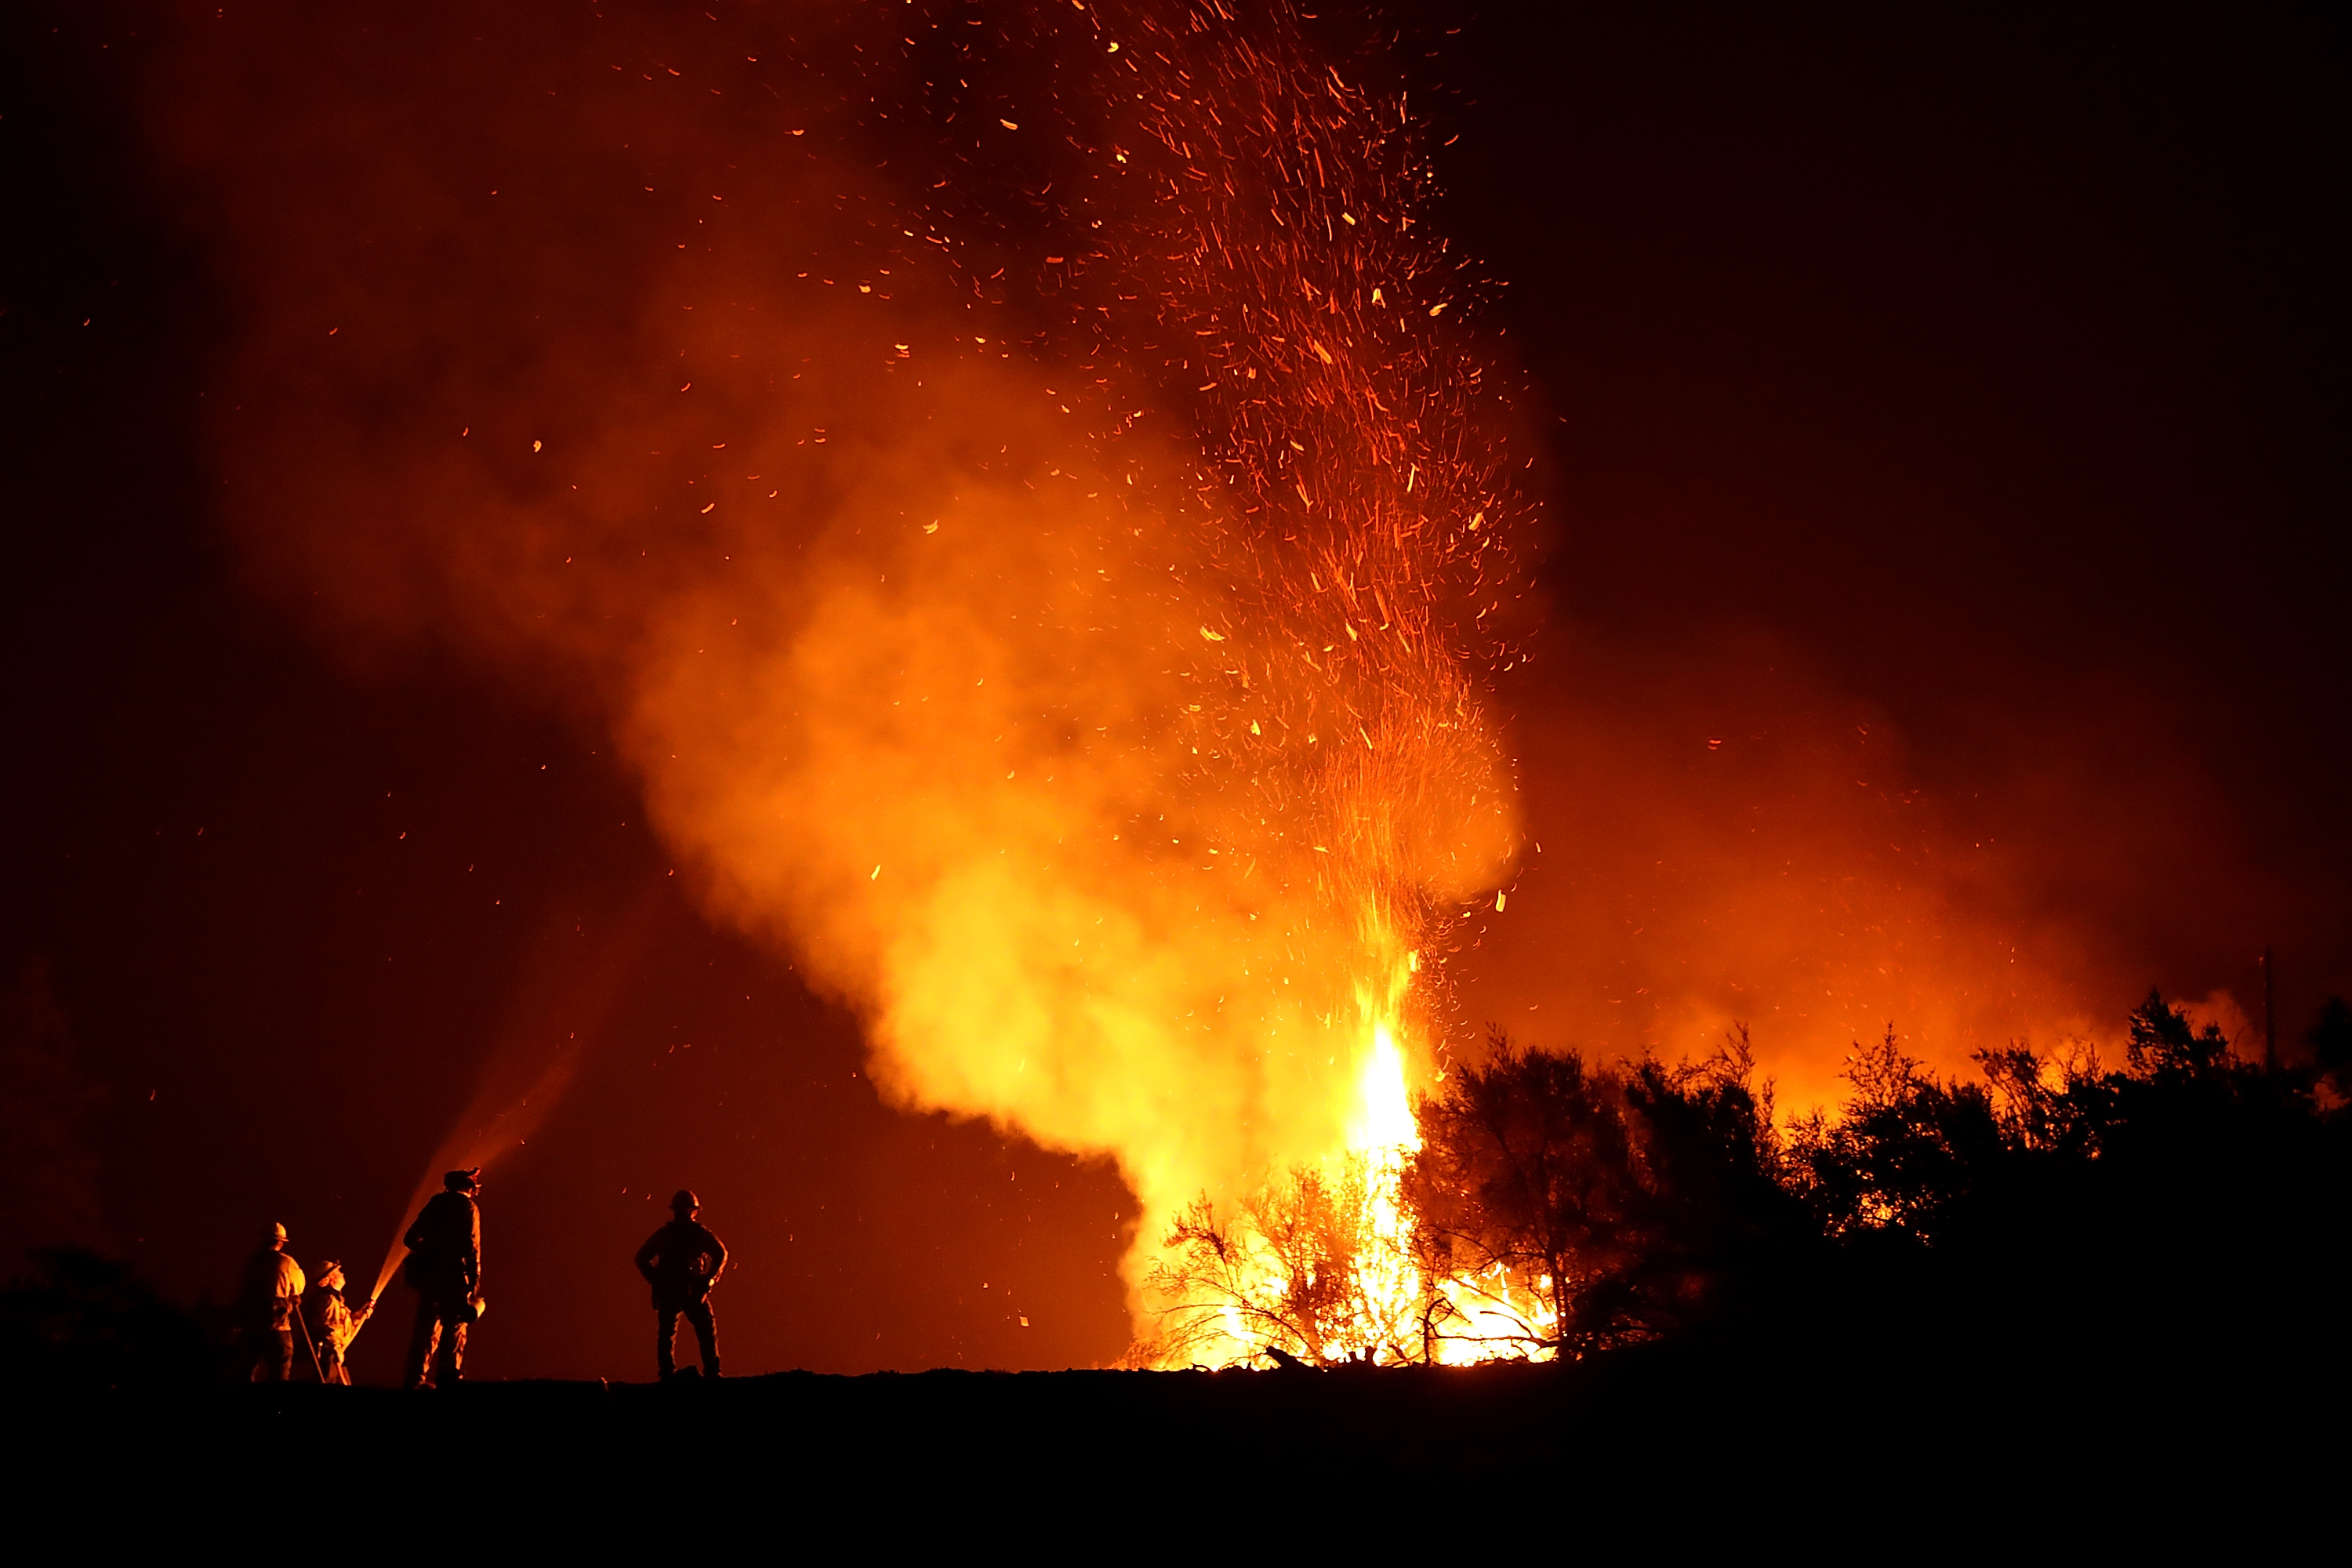 LODOGA, CA - AUGUST 07: Cal Fire firefighters monitor a back fire as they battle the Medocino Complex fire on August 7, 2018 near Lodoga, California. The Mendocino Complex Fire, which is made up of the River Fire and Ranch Fire, has surpassed the Thomas Fire to become the largest wildfire in California state history with over 280,000 acres charred and at least 75 homes destroyed. (Photo by Justin Sullivan/Getty Images)